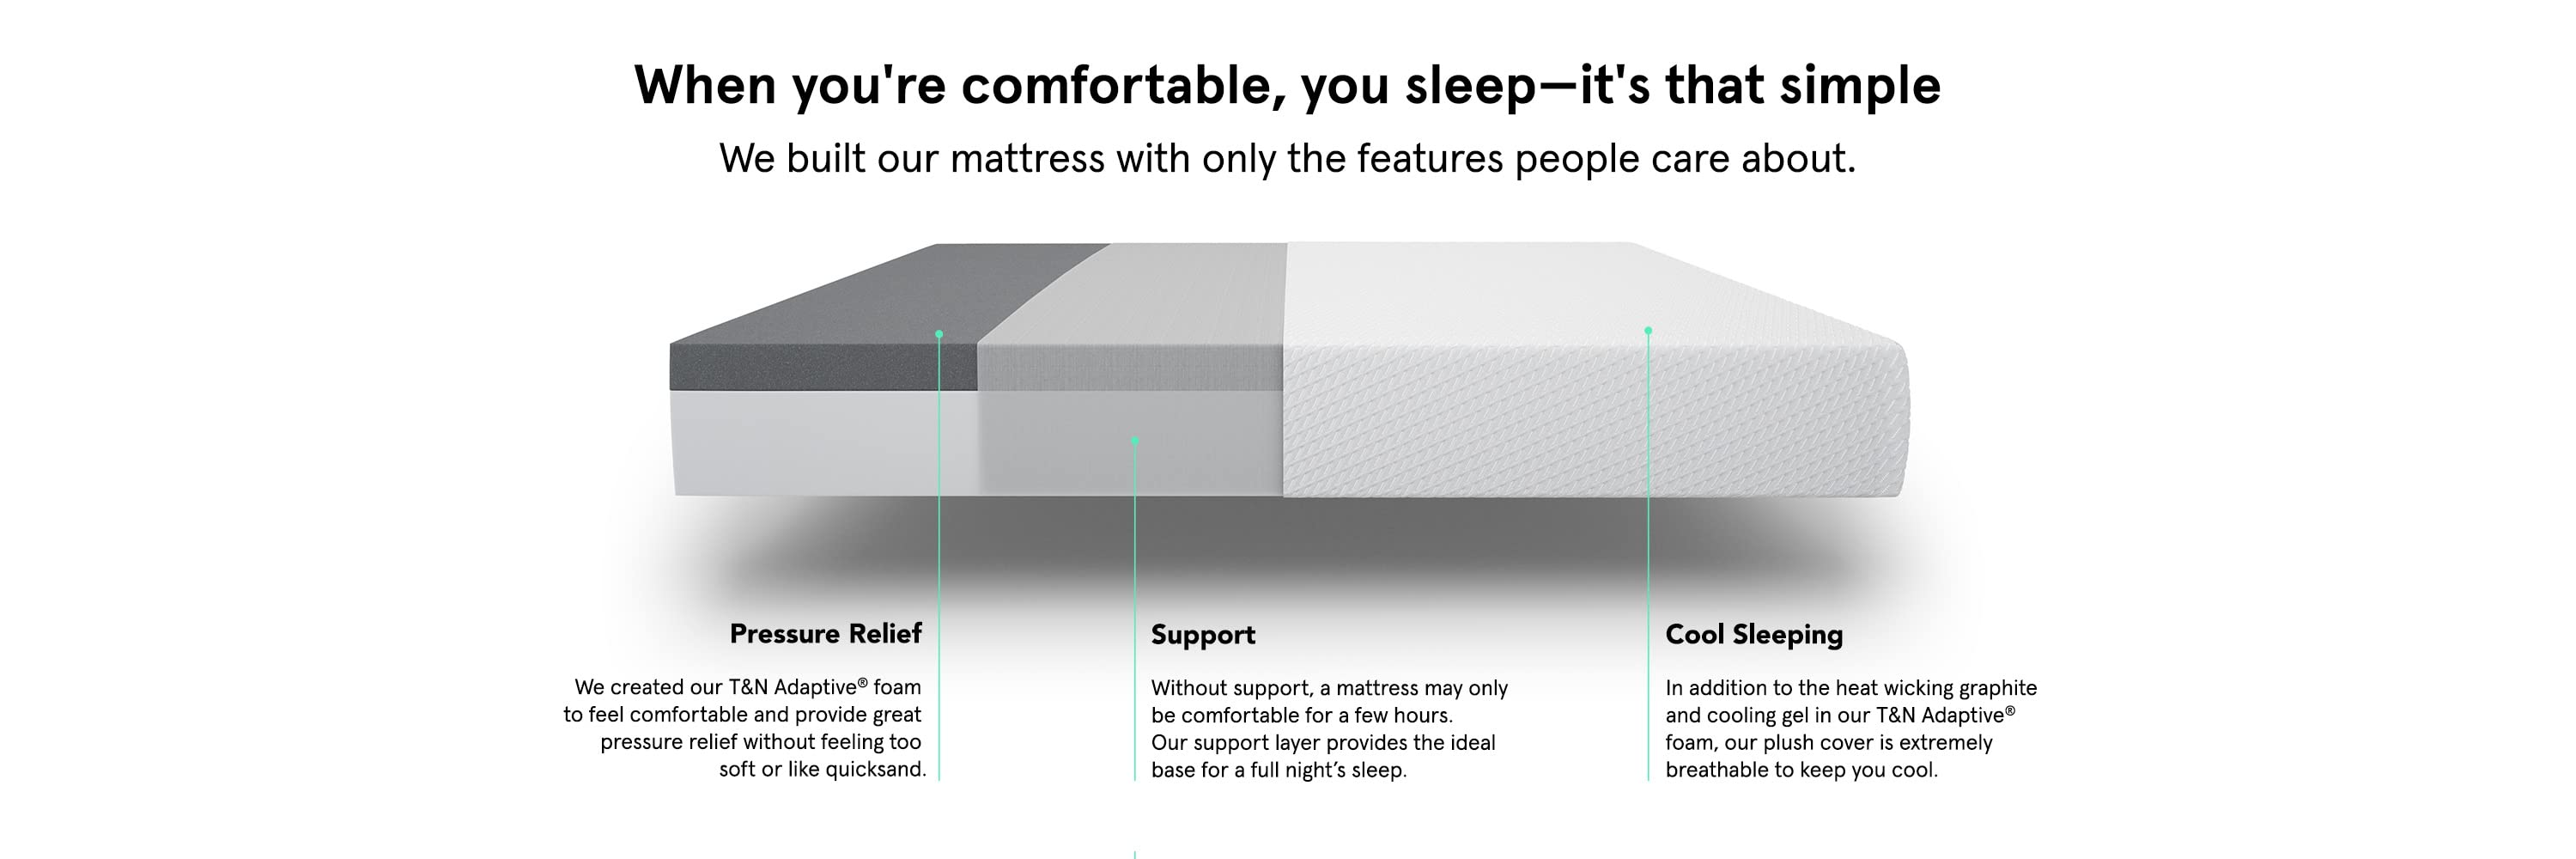 When you're comfortable, you sleep—it's that simple